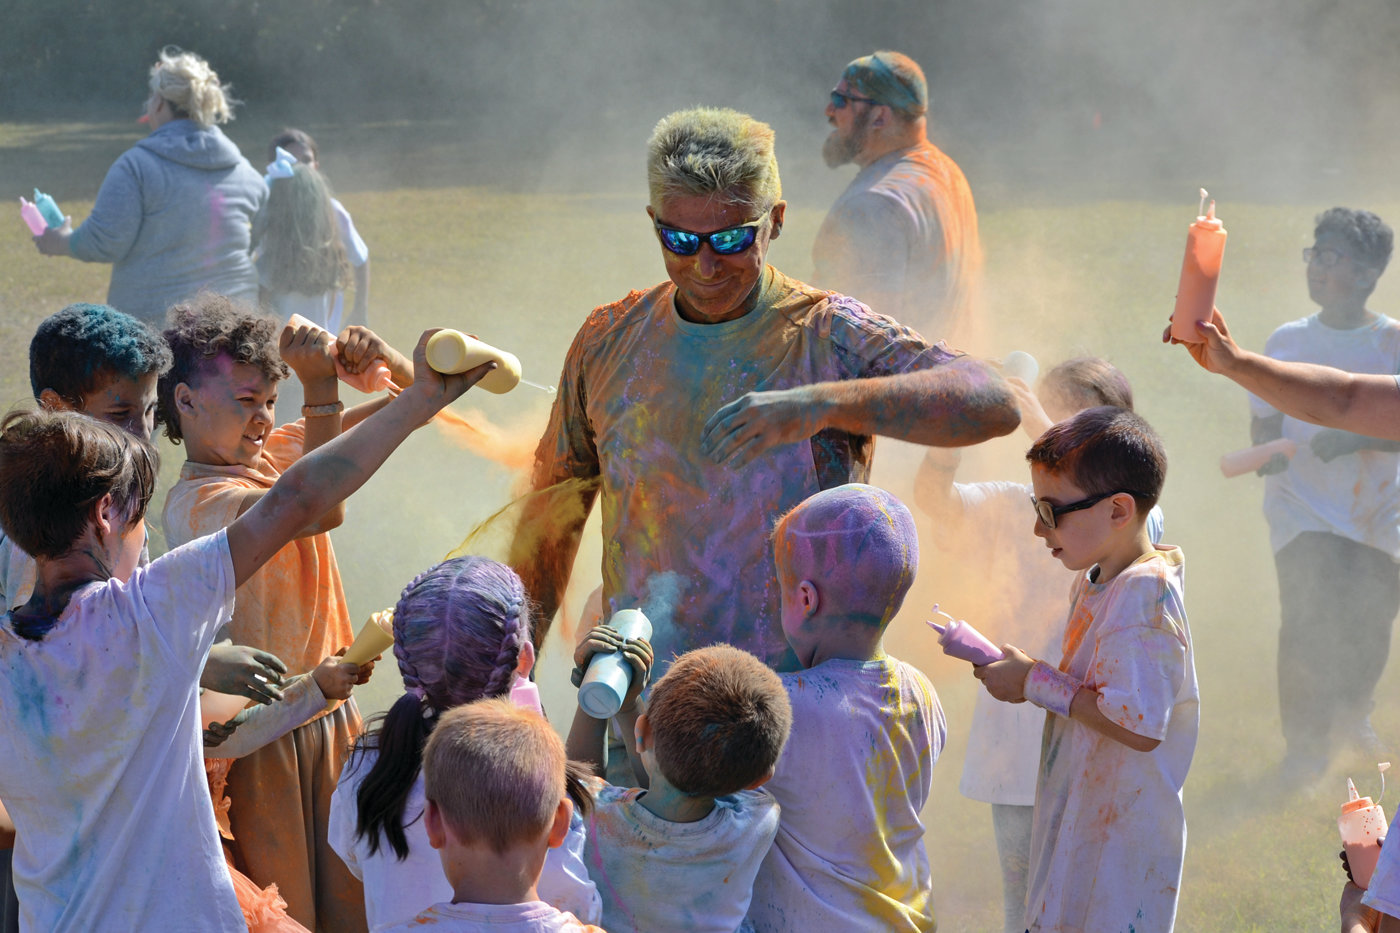 SHOWING HIS TRUE COLORS: Hoxsie Elementary Principal Gary McCoombs smiles as he relents to students dumping the remaining color chalk onto him at the end of the school's second annual Color Fun Run on Saturday, which raised over $8,000 for the school's PTO.